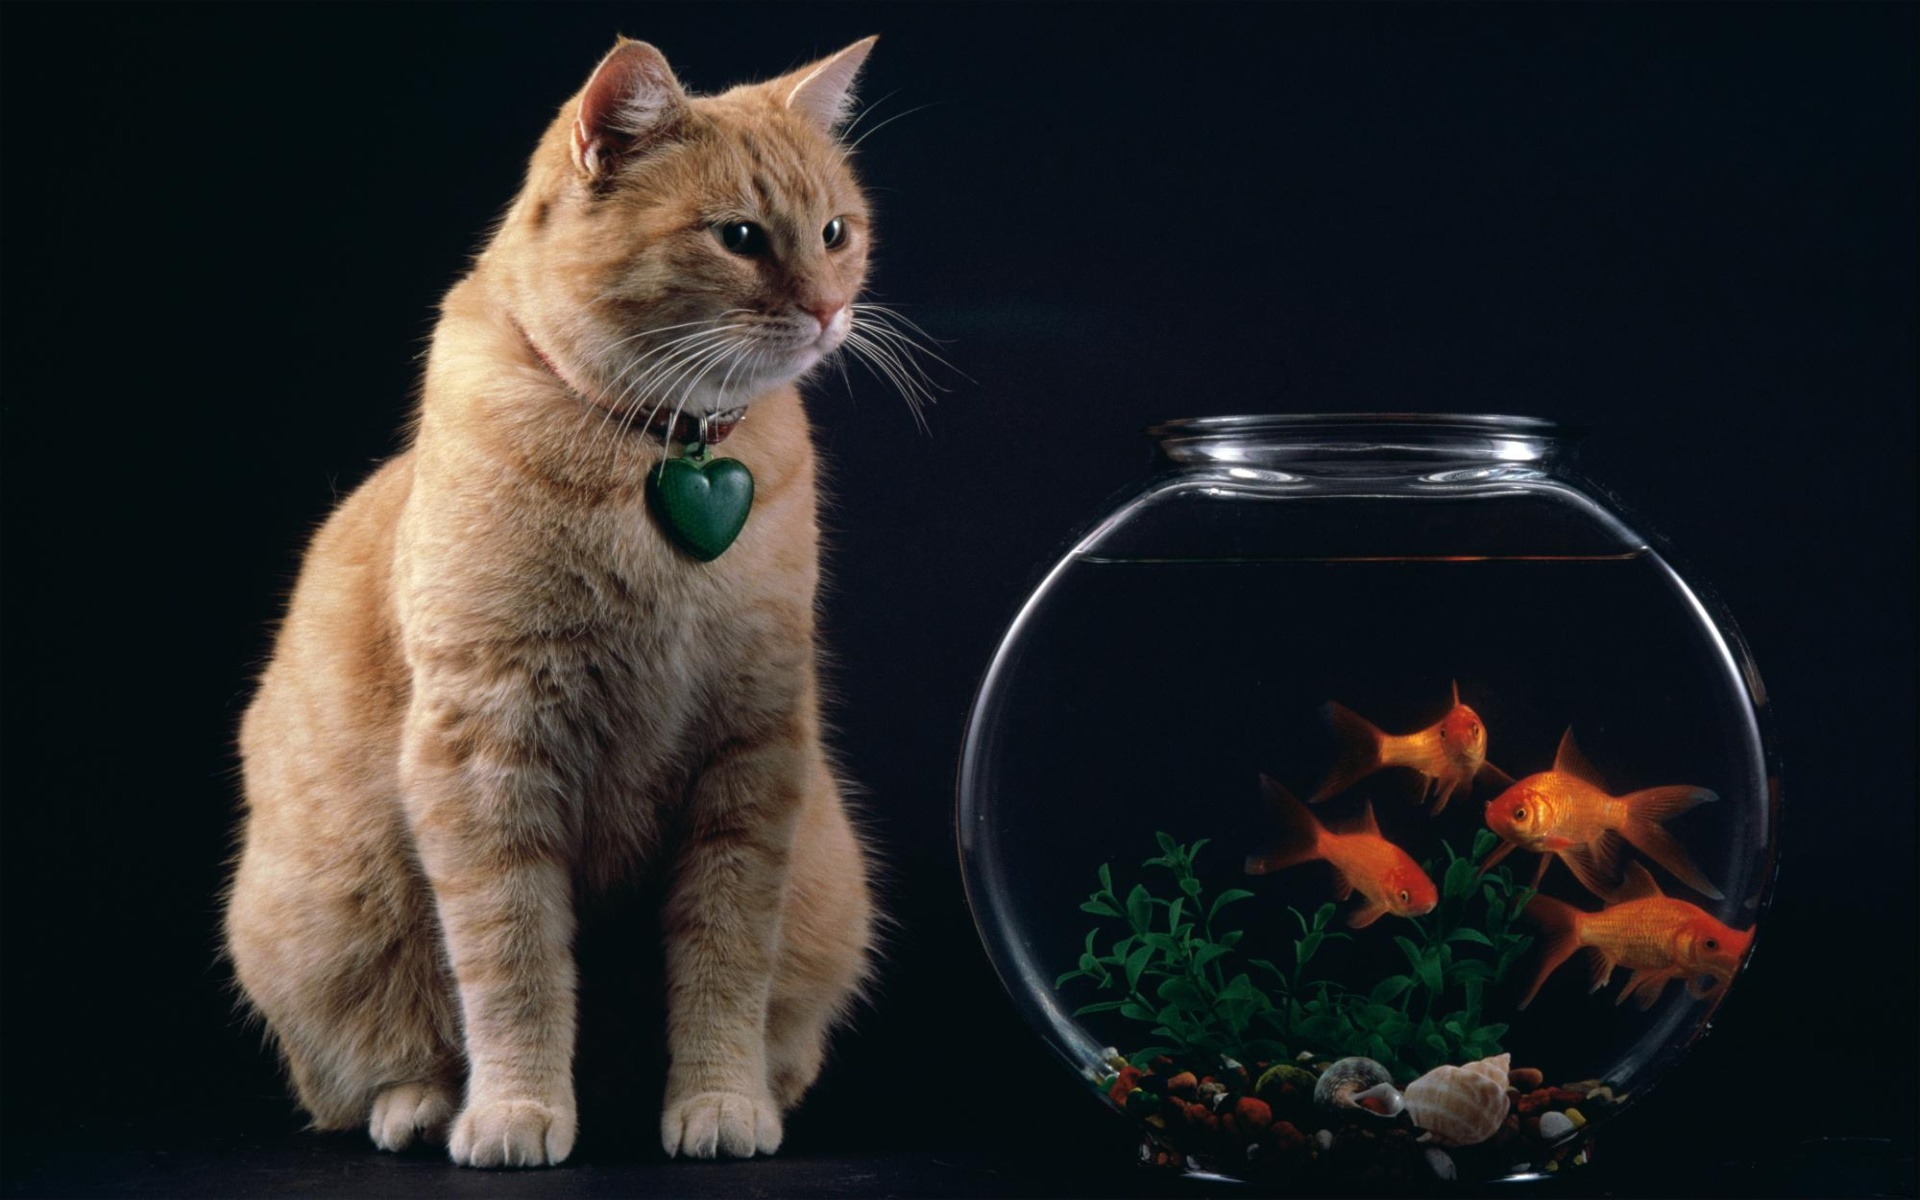 Cute Fish Iphone Wallpaper Cat And Fish Bowl Wallpapers Cat And Fish Bowl Stock Photos